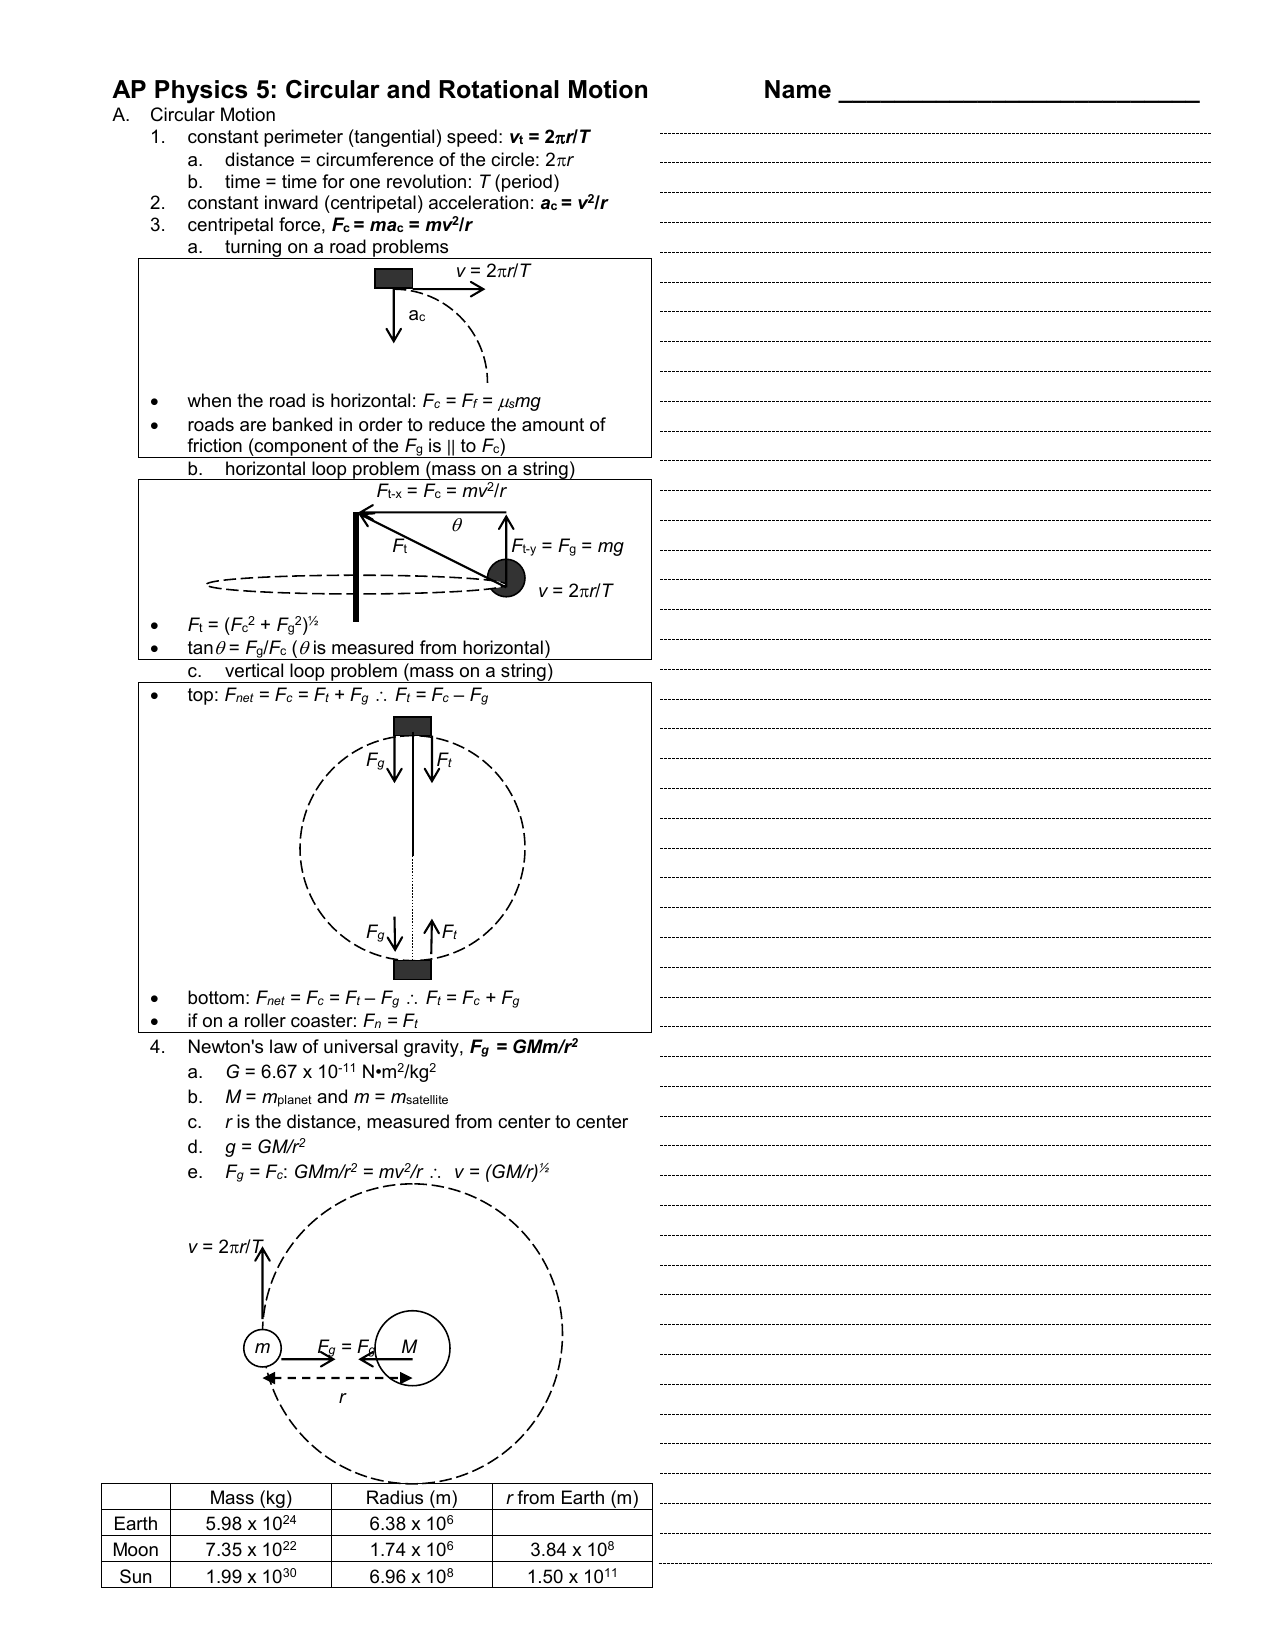 AP Physics 5 Worksheet and Answers